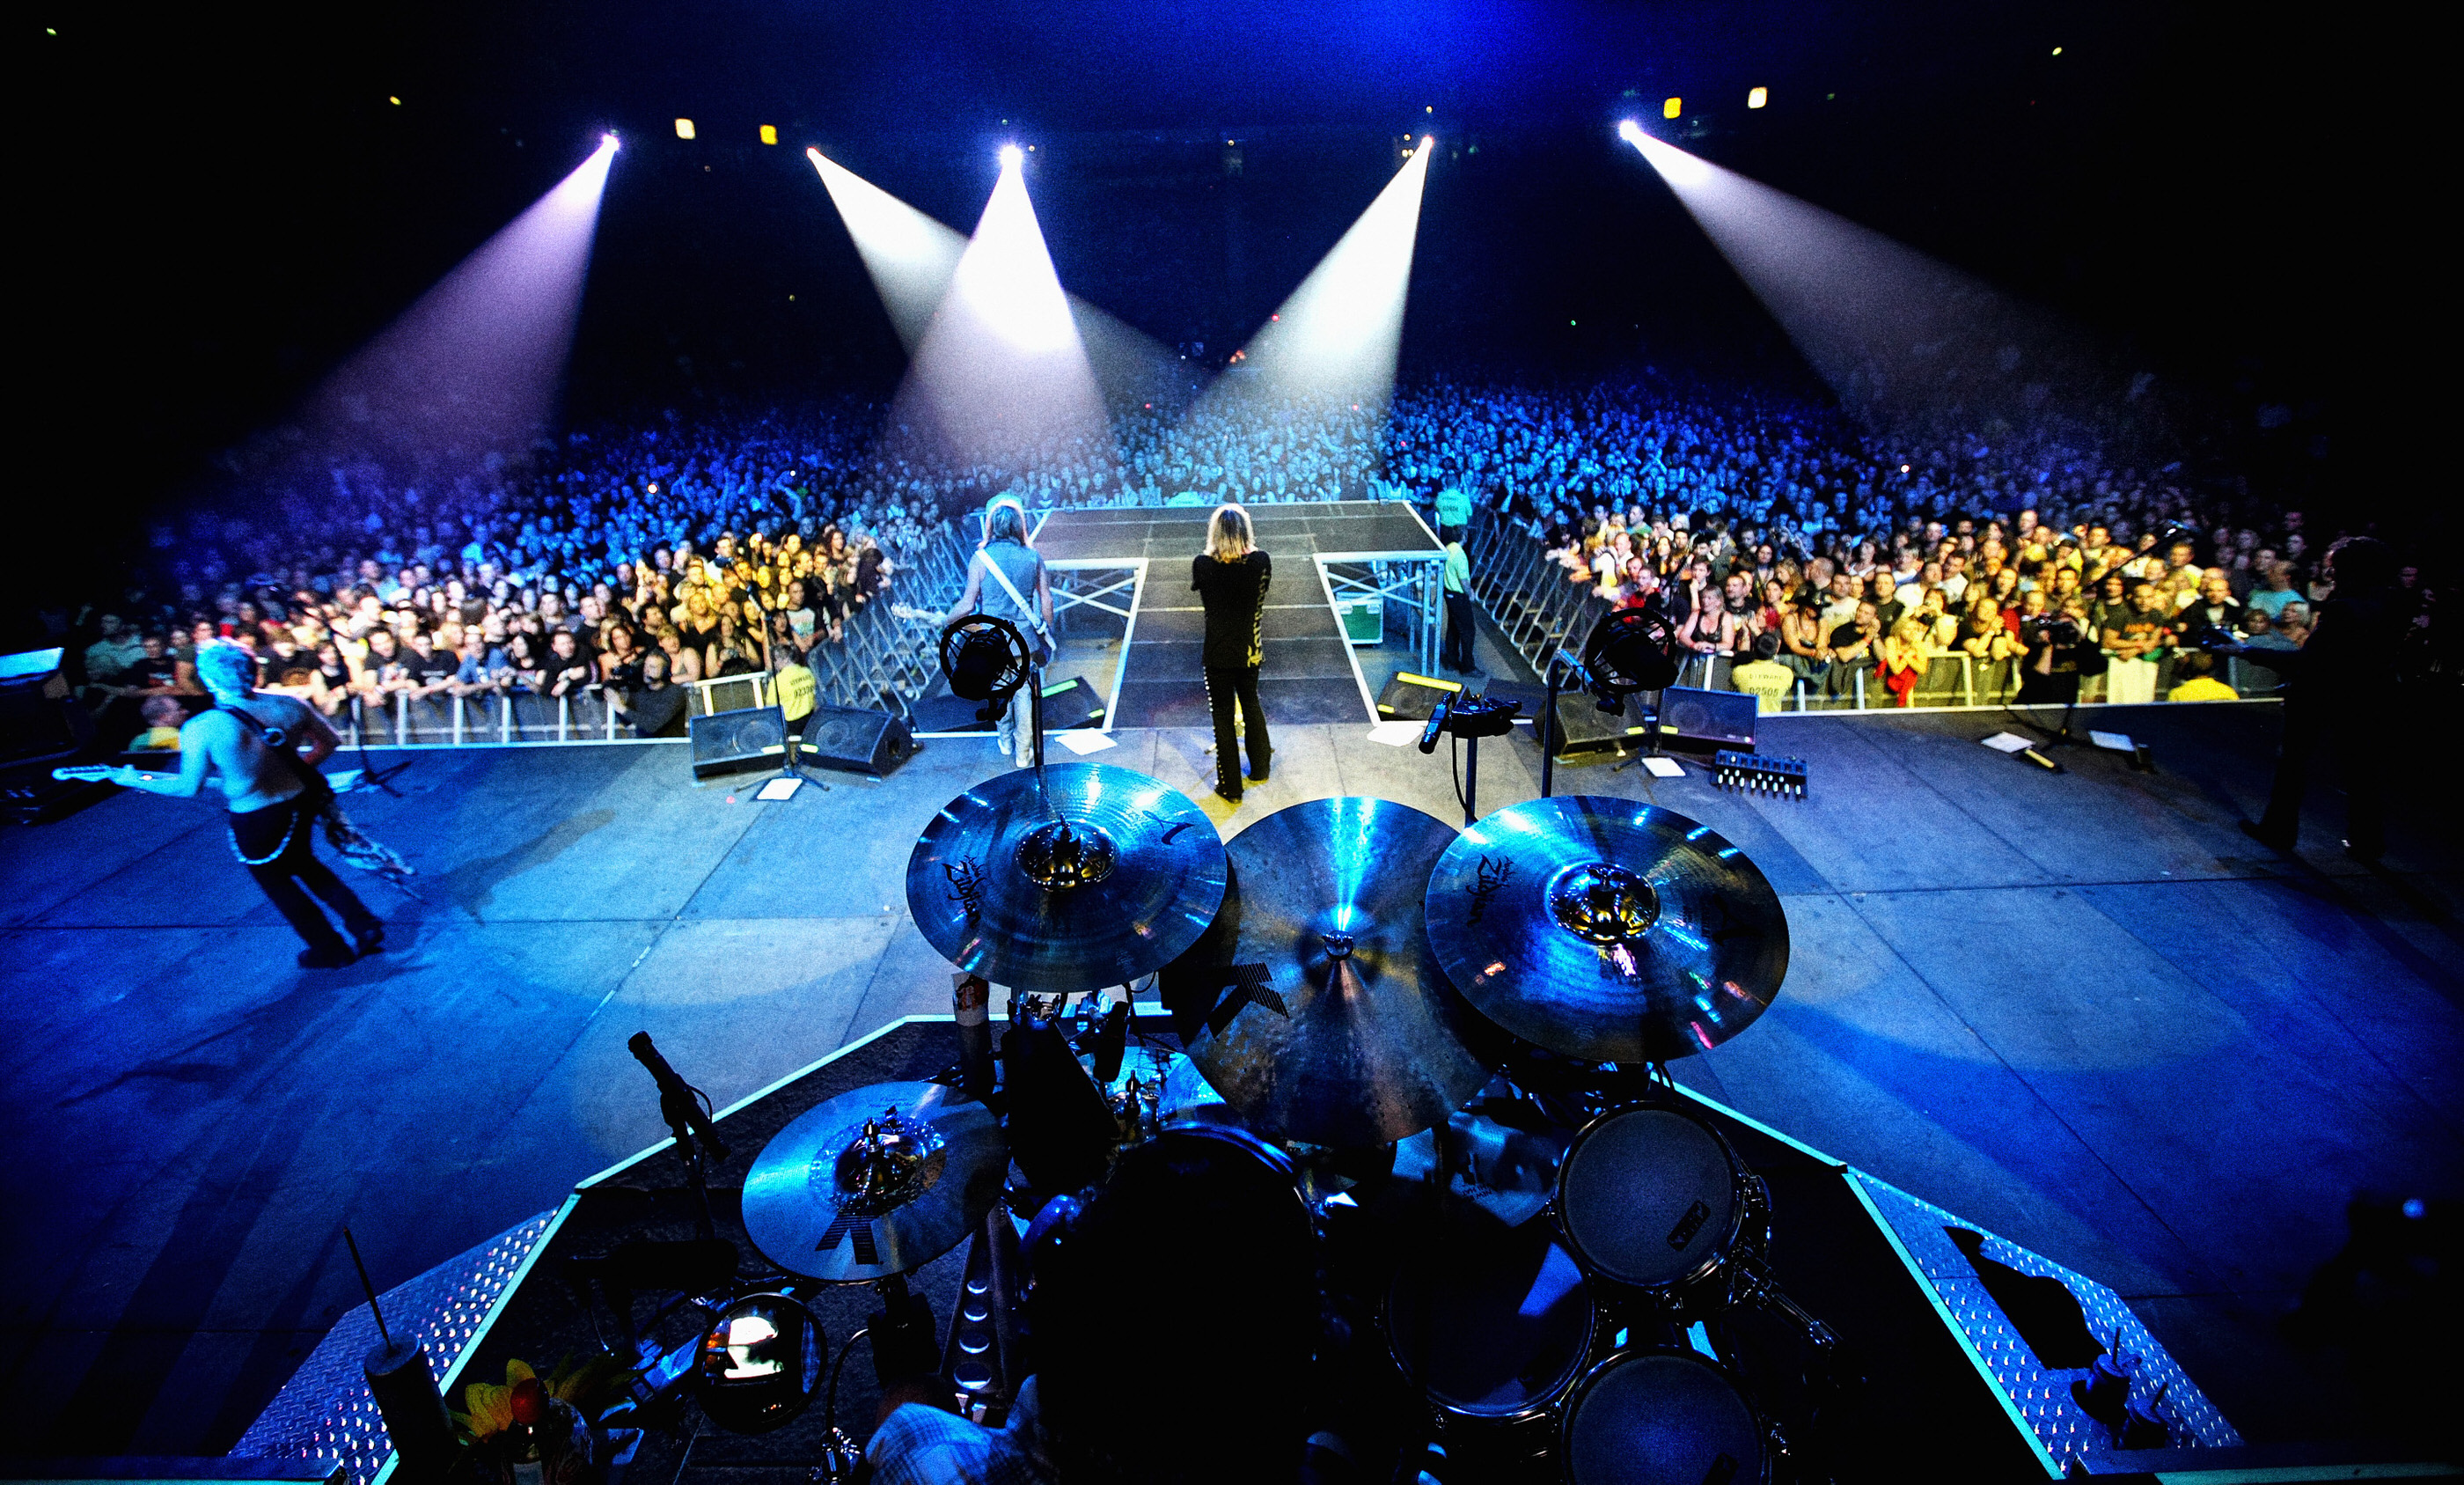 def-leppard-live-onstage-manchester-audience3